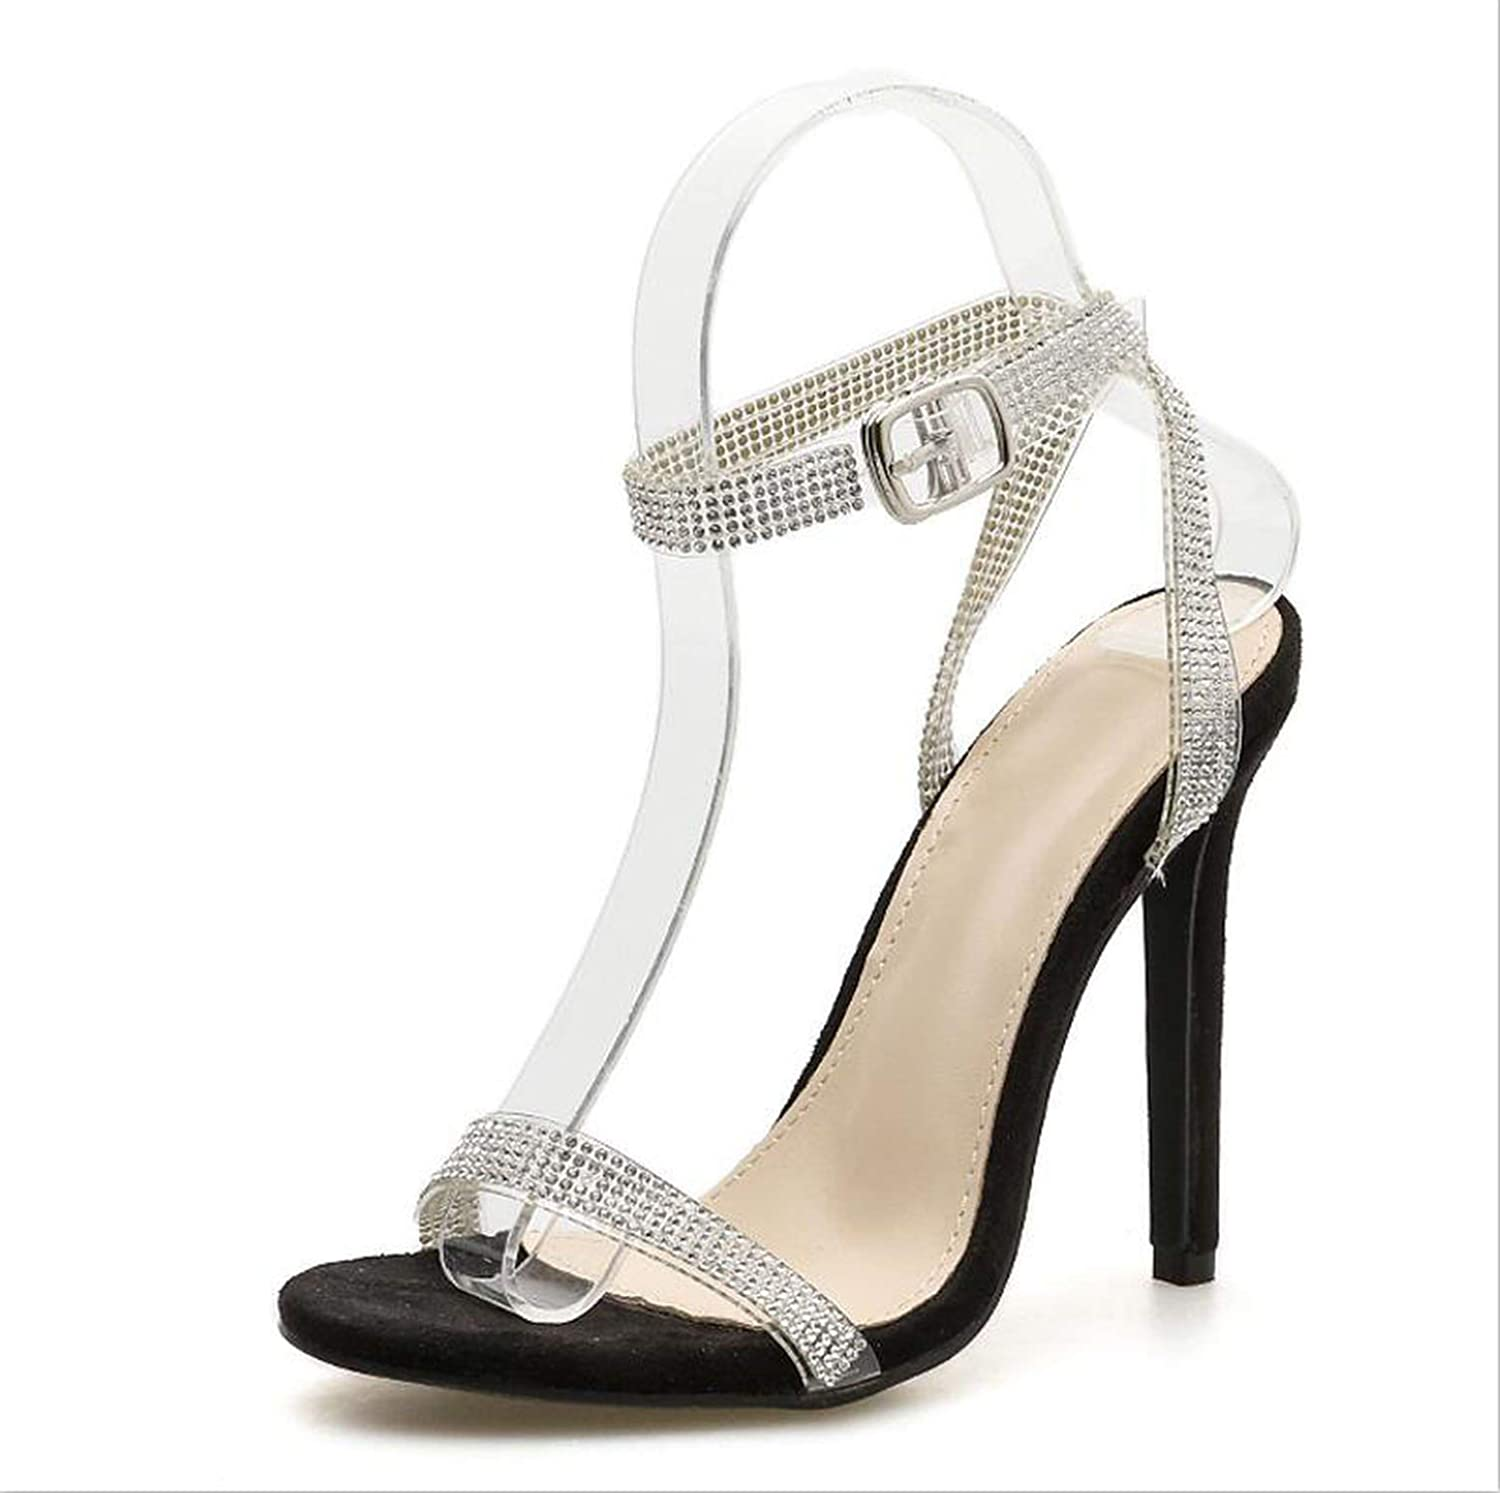 Hi Monkeys-Ssandals Sexy Silver Crystal Bling Women Sandals Buckle Strap Women shoes Thin Heels